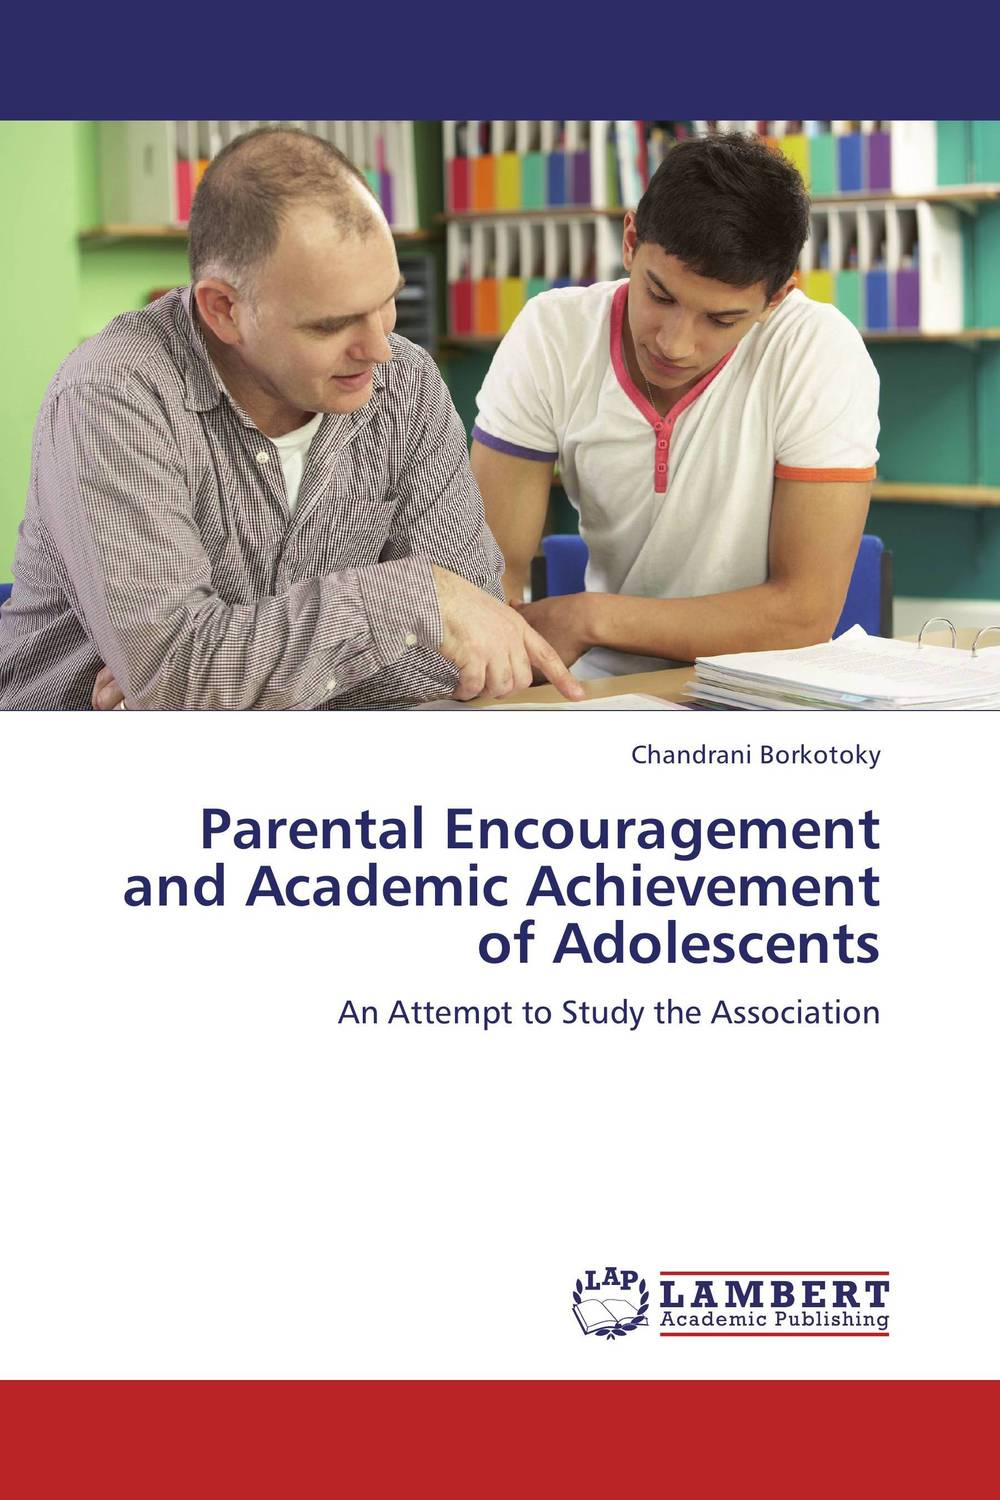 Parental Encouragement and Academic Achievement of Adolescents